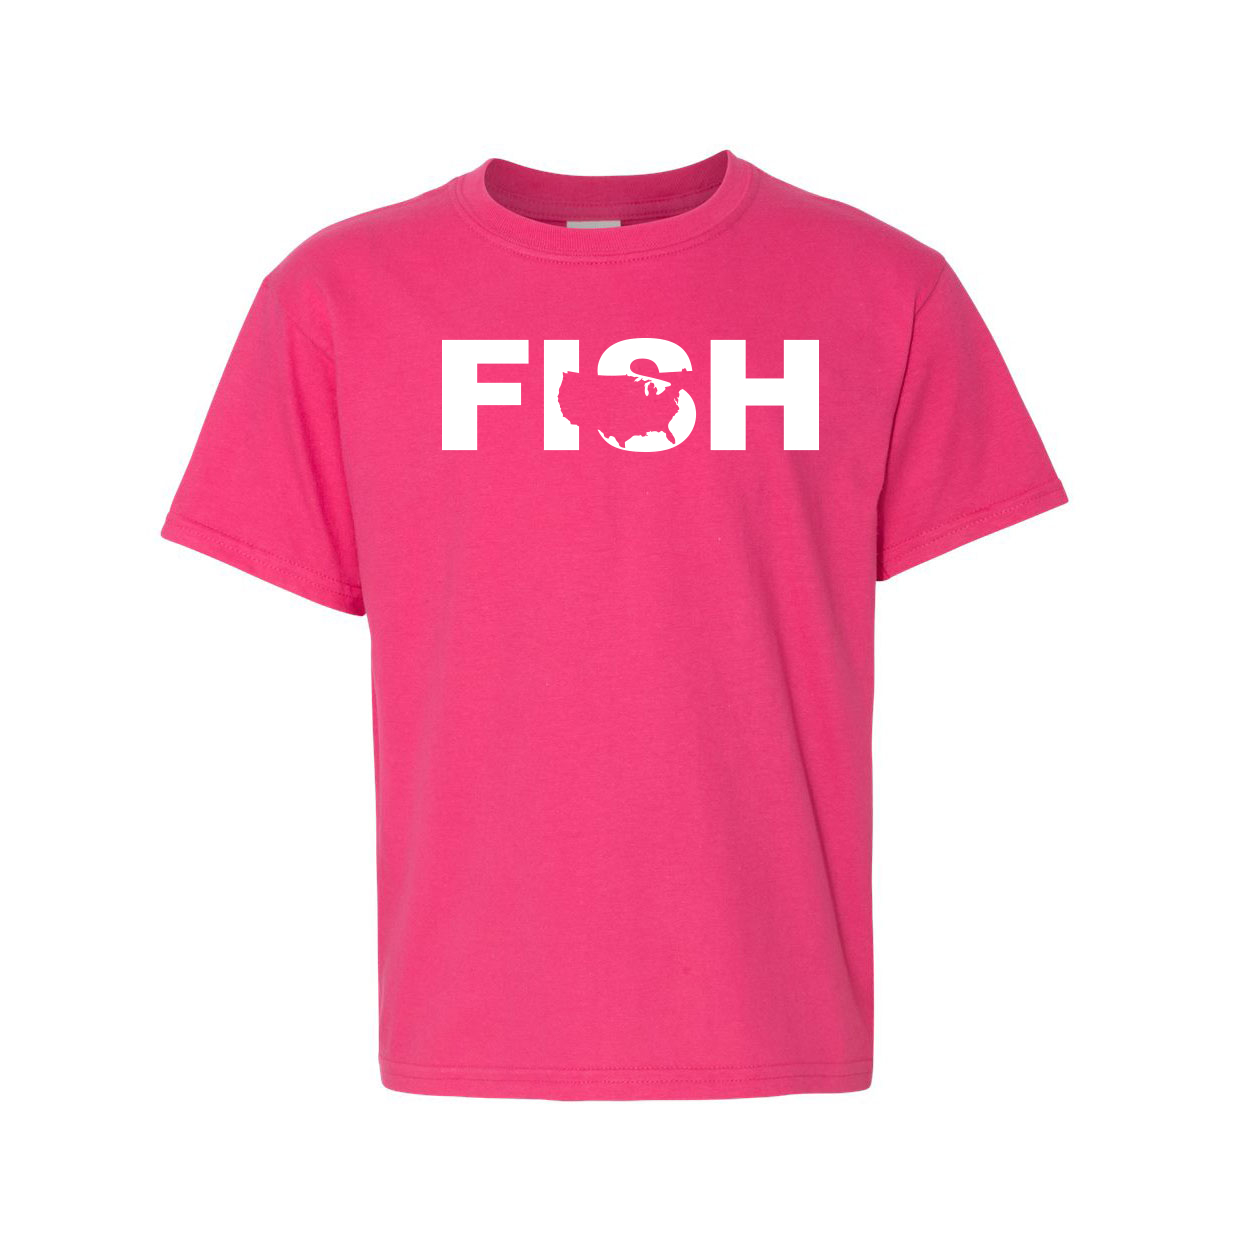 Fish United States Classic Youth T-Shirt Pink (White Logo)